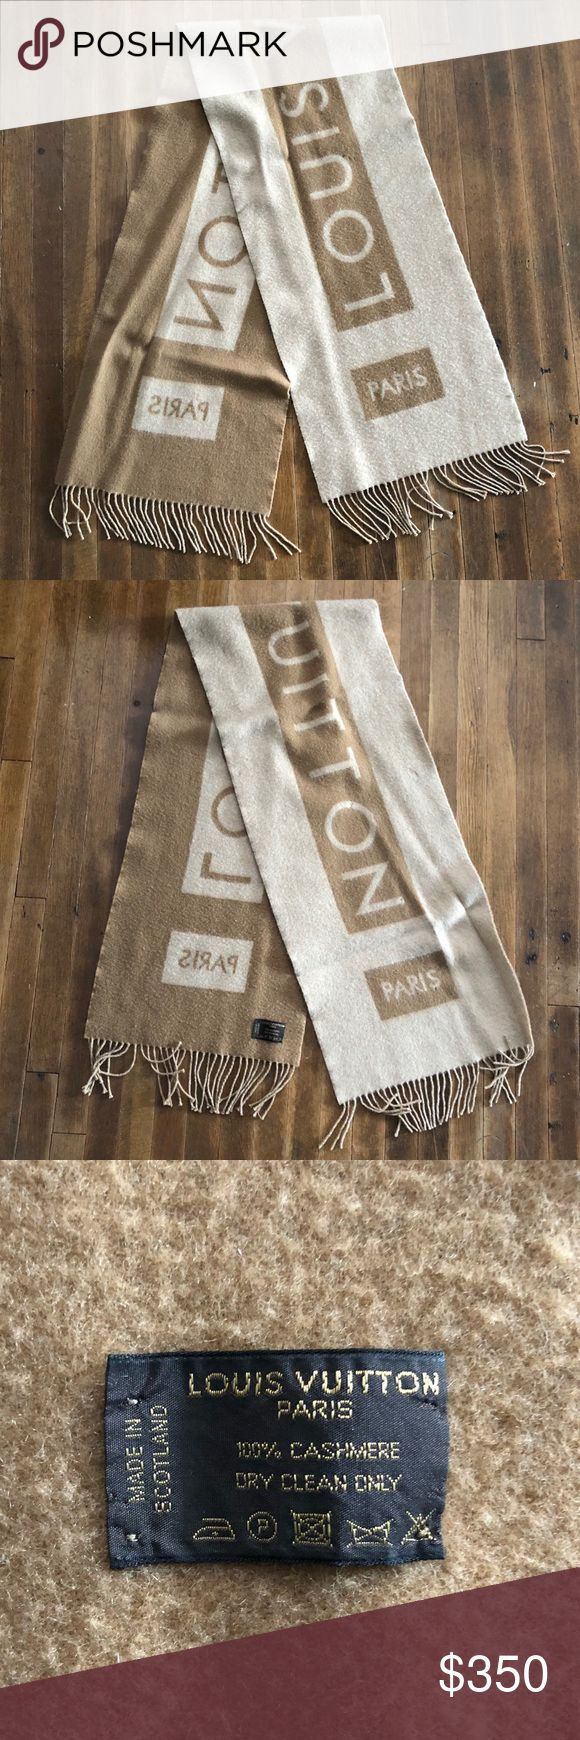 LOUIS VUITTON CASHMERE LOGO SCARF Camel Cashmere Echarpe Baroda Logo Scarf/Wrap. 100% cashmere. Super plush. Some moth damage from storage as pictured, but hardly noticeable when wearing. Louis Vuitton Accessories Scarves & Wraps